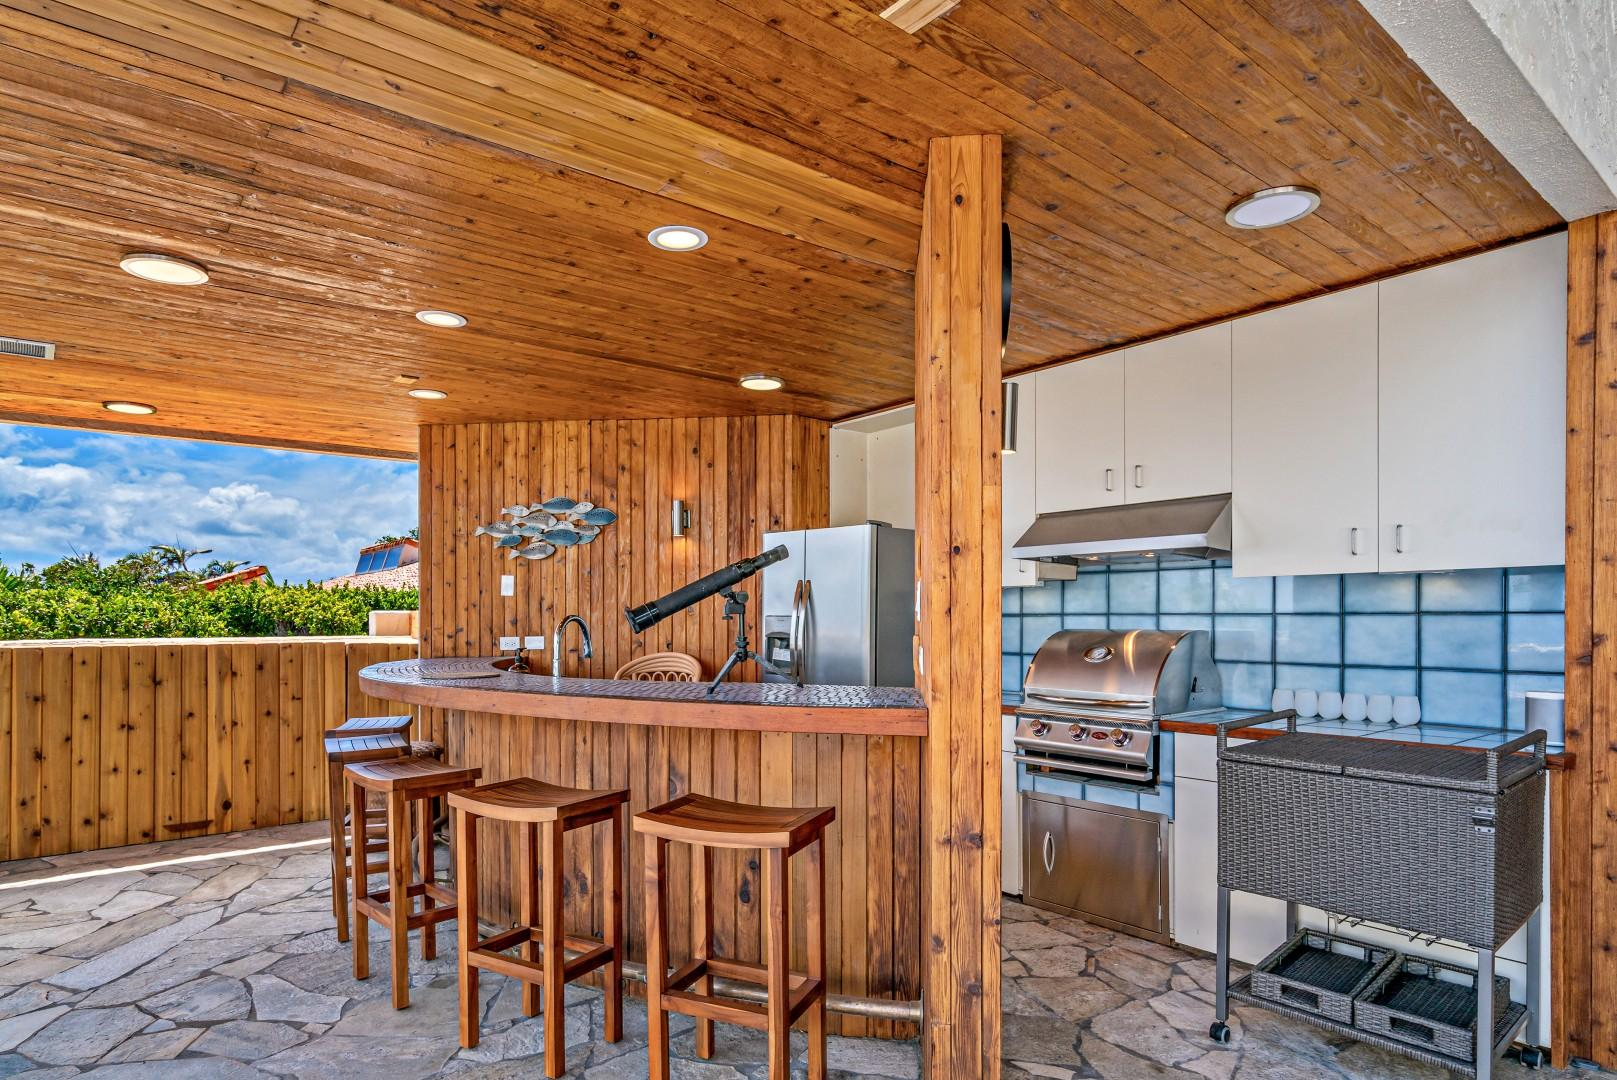 Full outdoor kitchen and bar with gas grill.